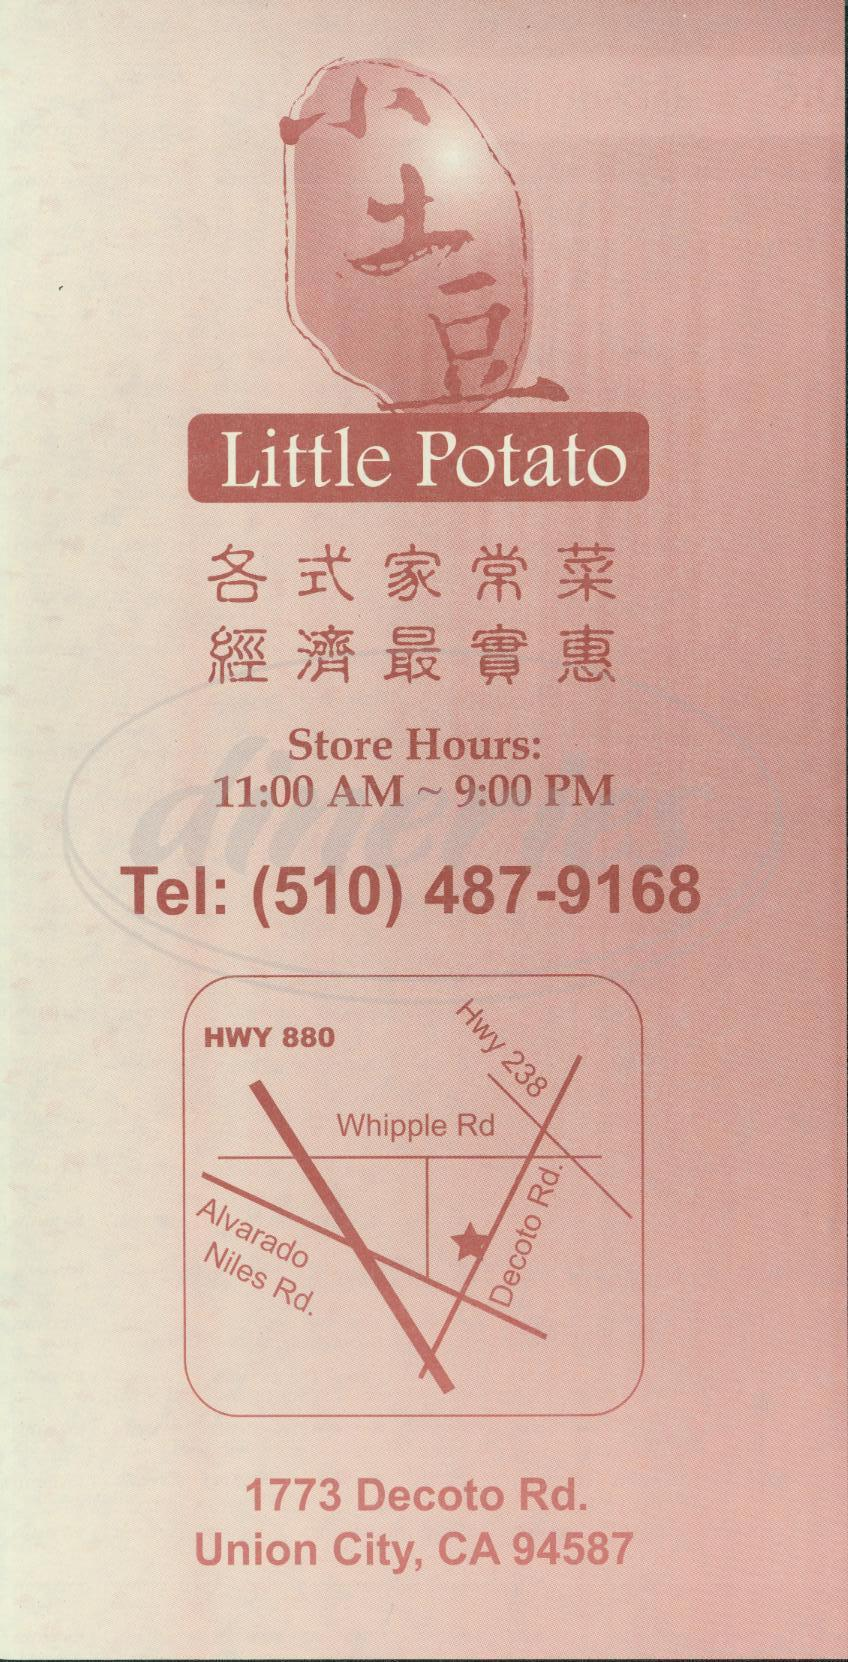 menu for Little Potato